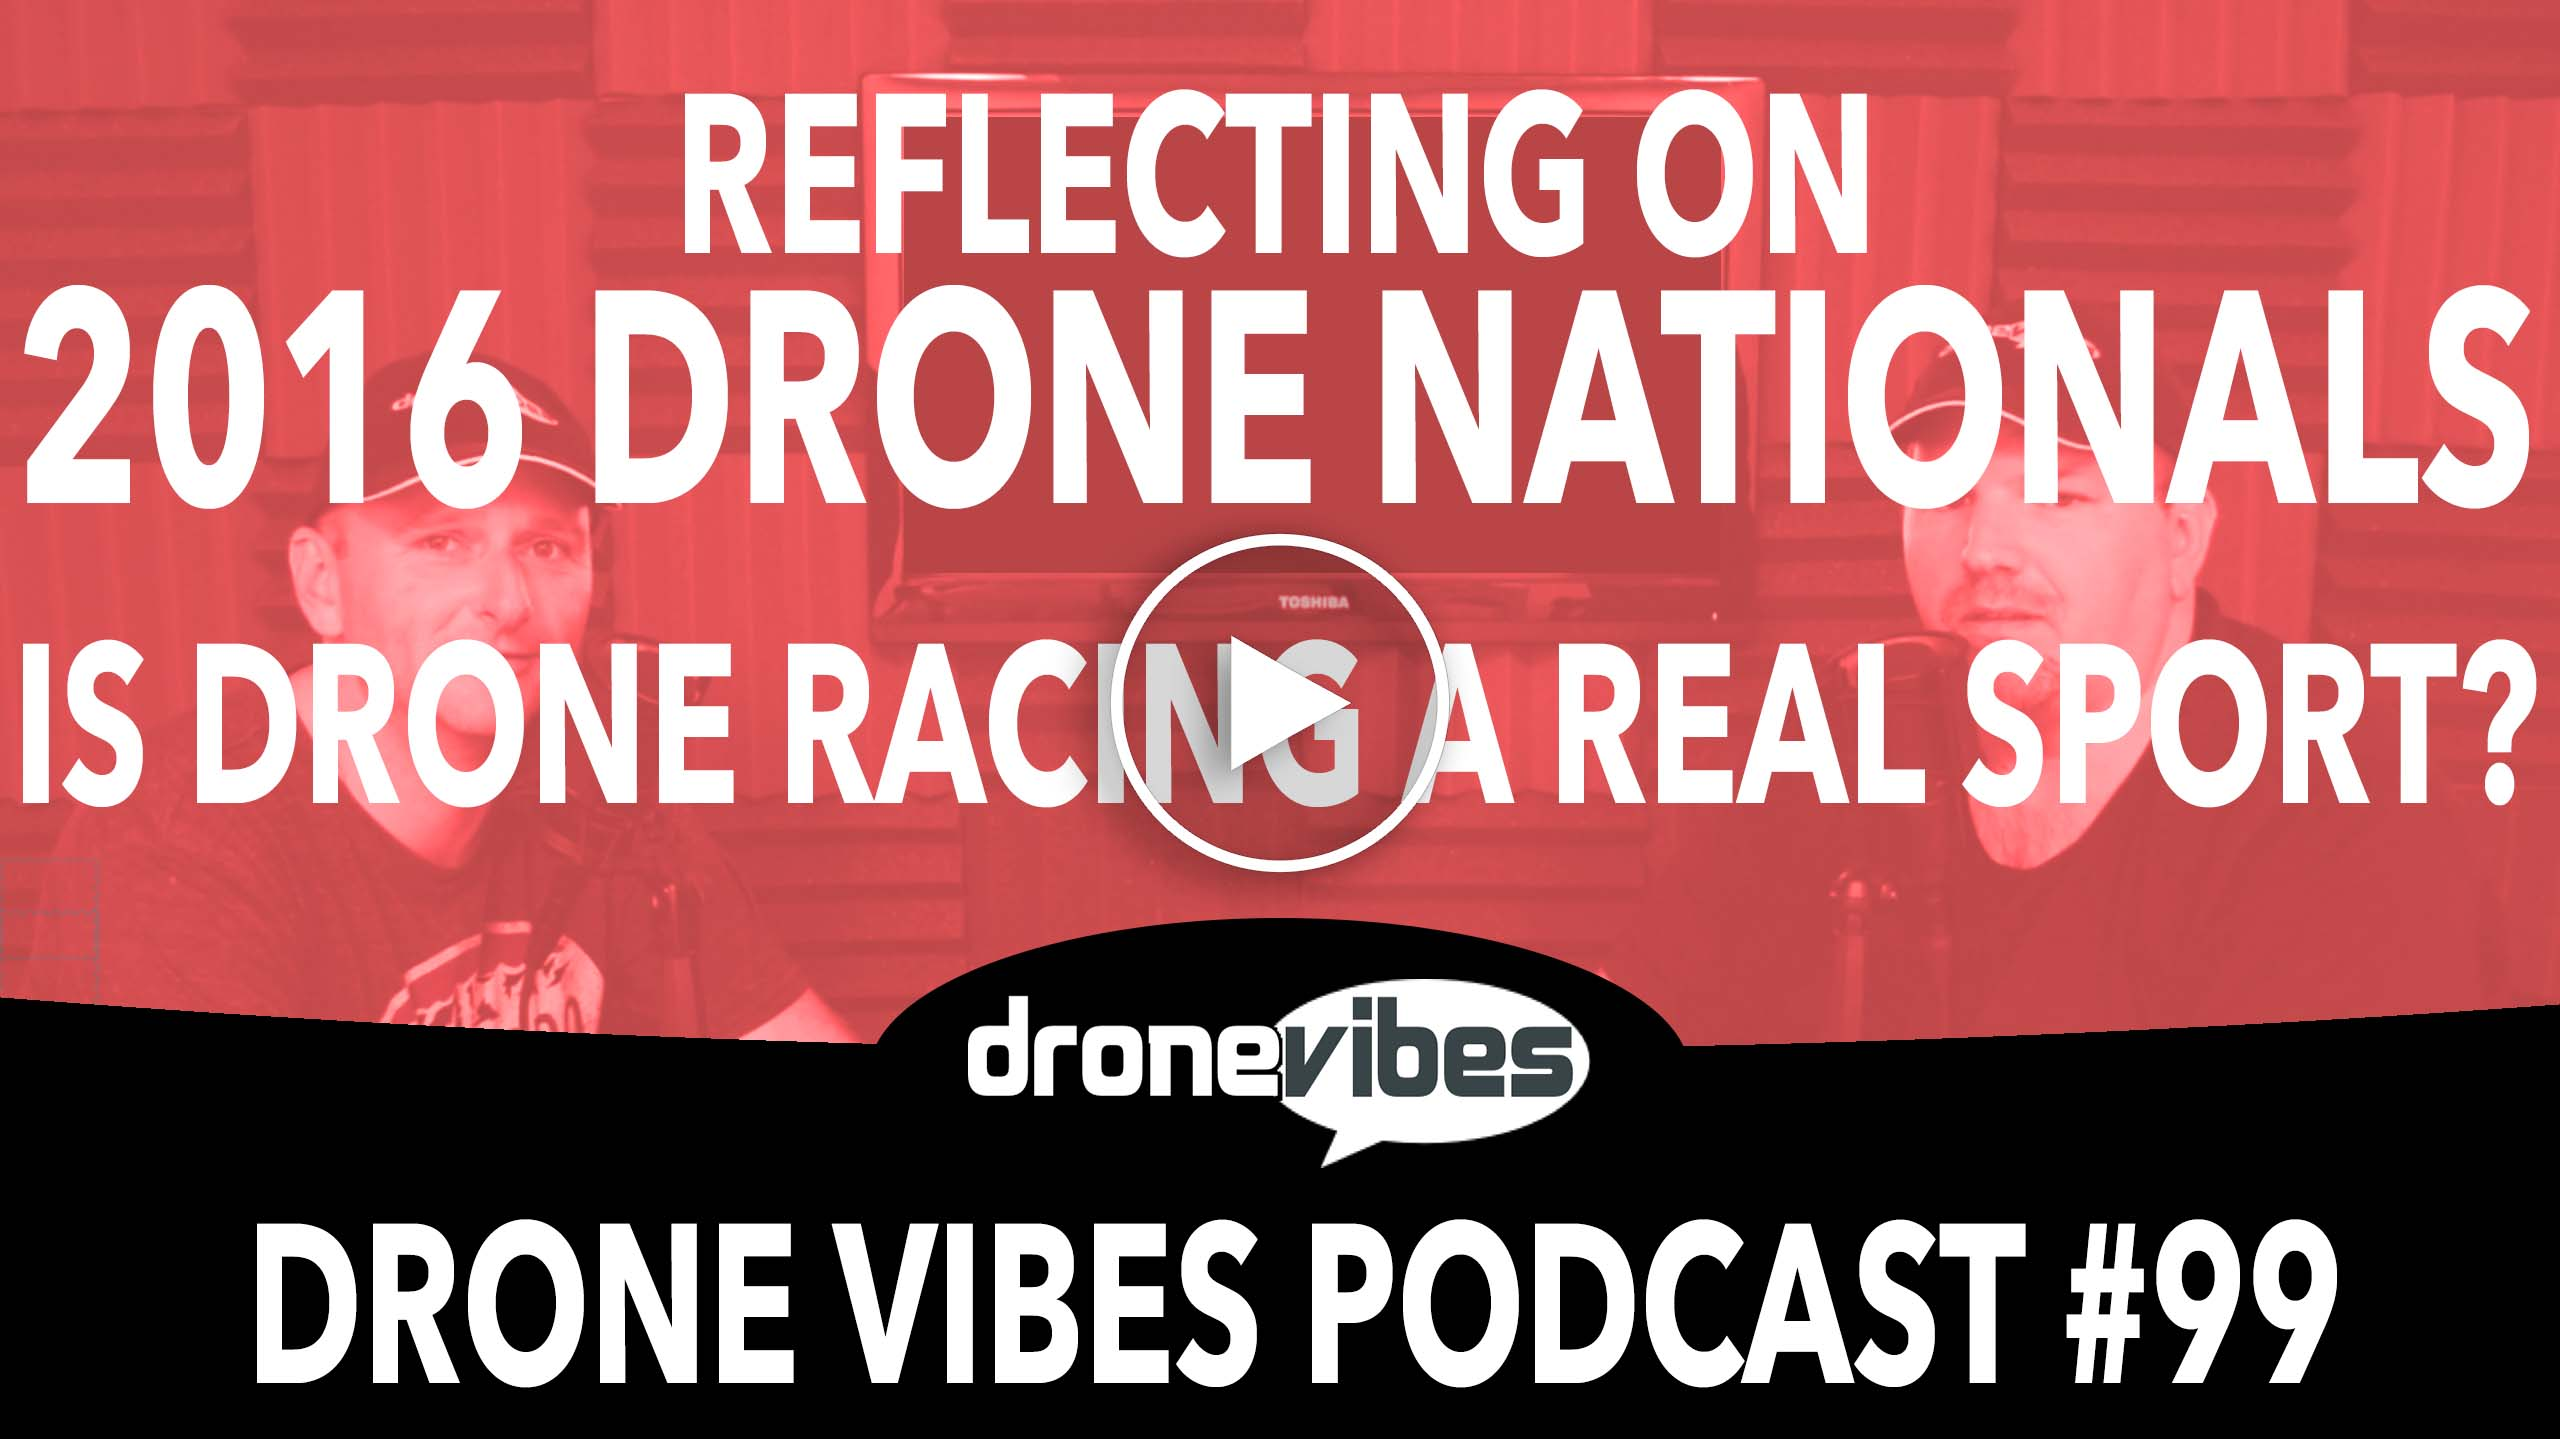 Drone Vibes Video: Reflecting on 2016 Drone Nationals in NYC – is Drone Racing a Real Sport?